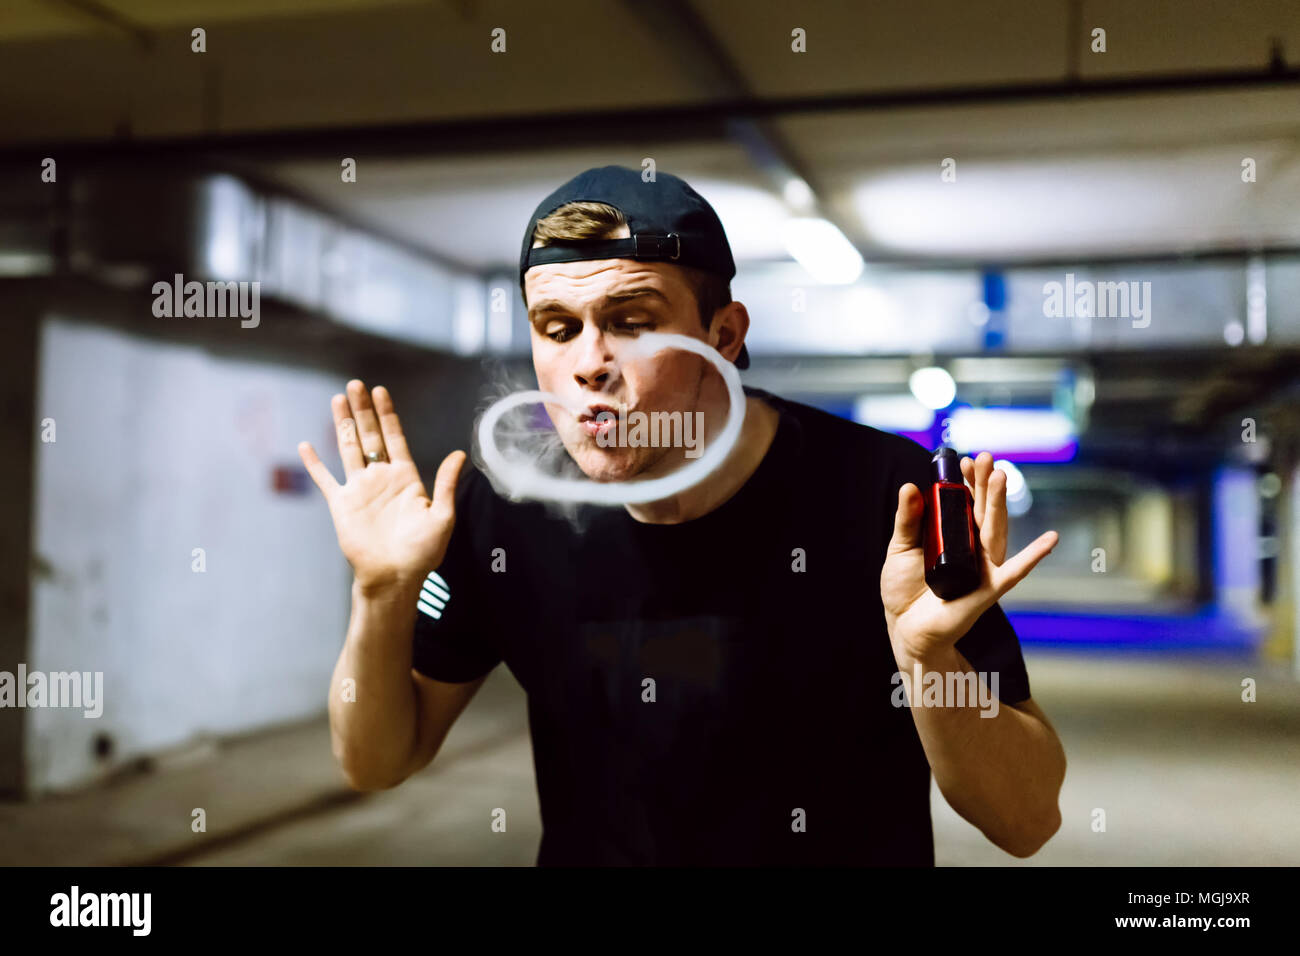 Man in cap smoke an electronic cigarette and releases clouds of vapor performing various kind of vaping tricks Stock Photo